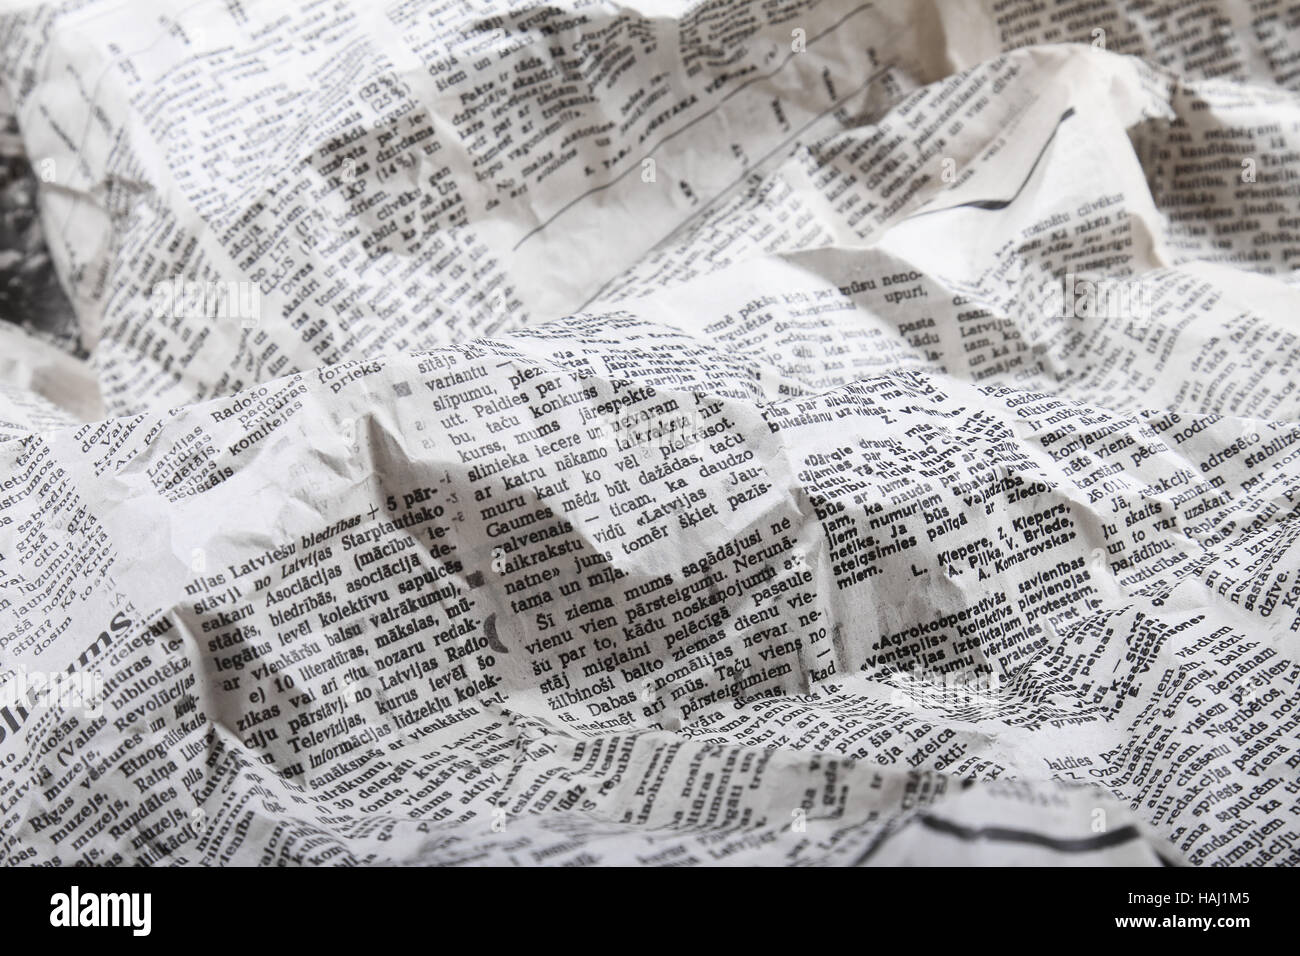 background of old crumpled newspaper - Stock Image